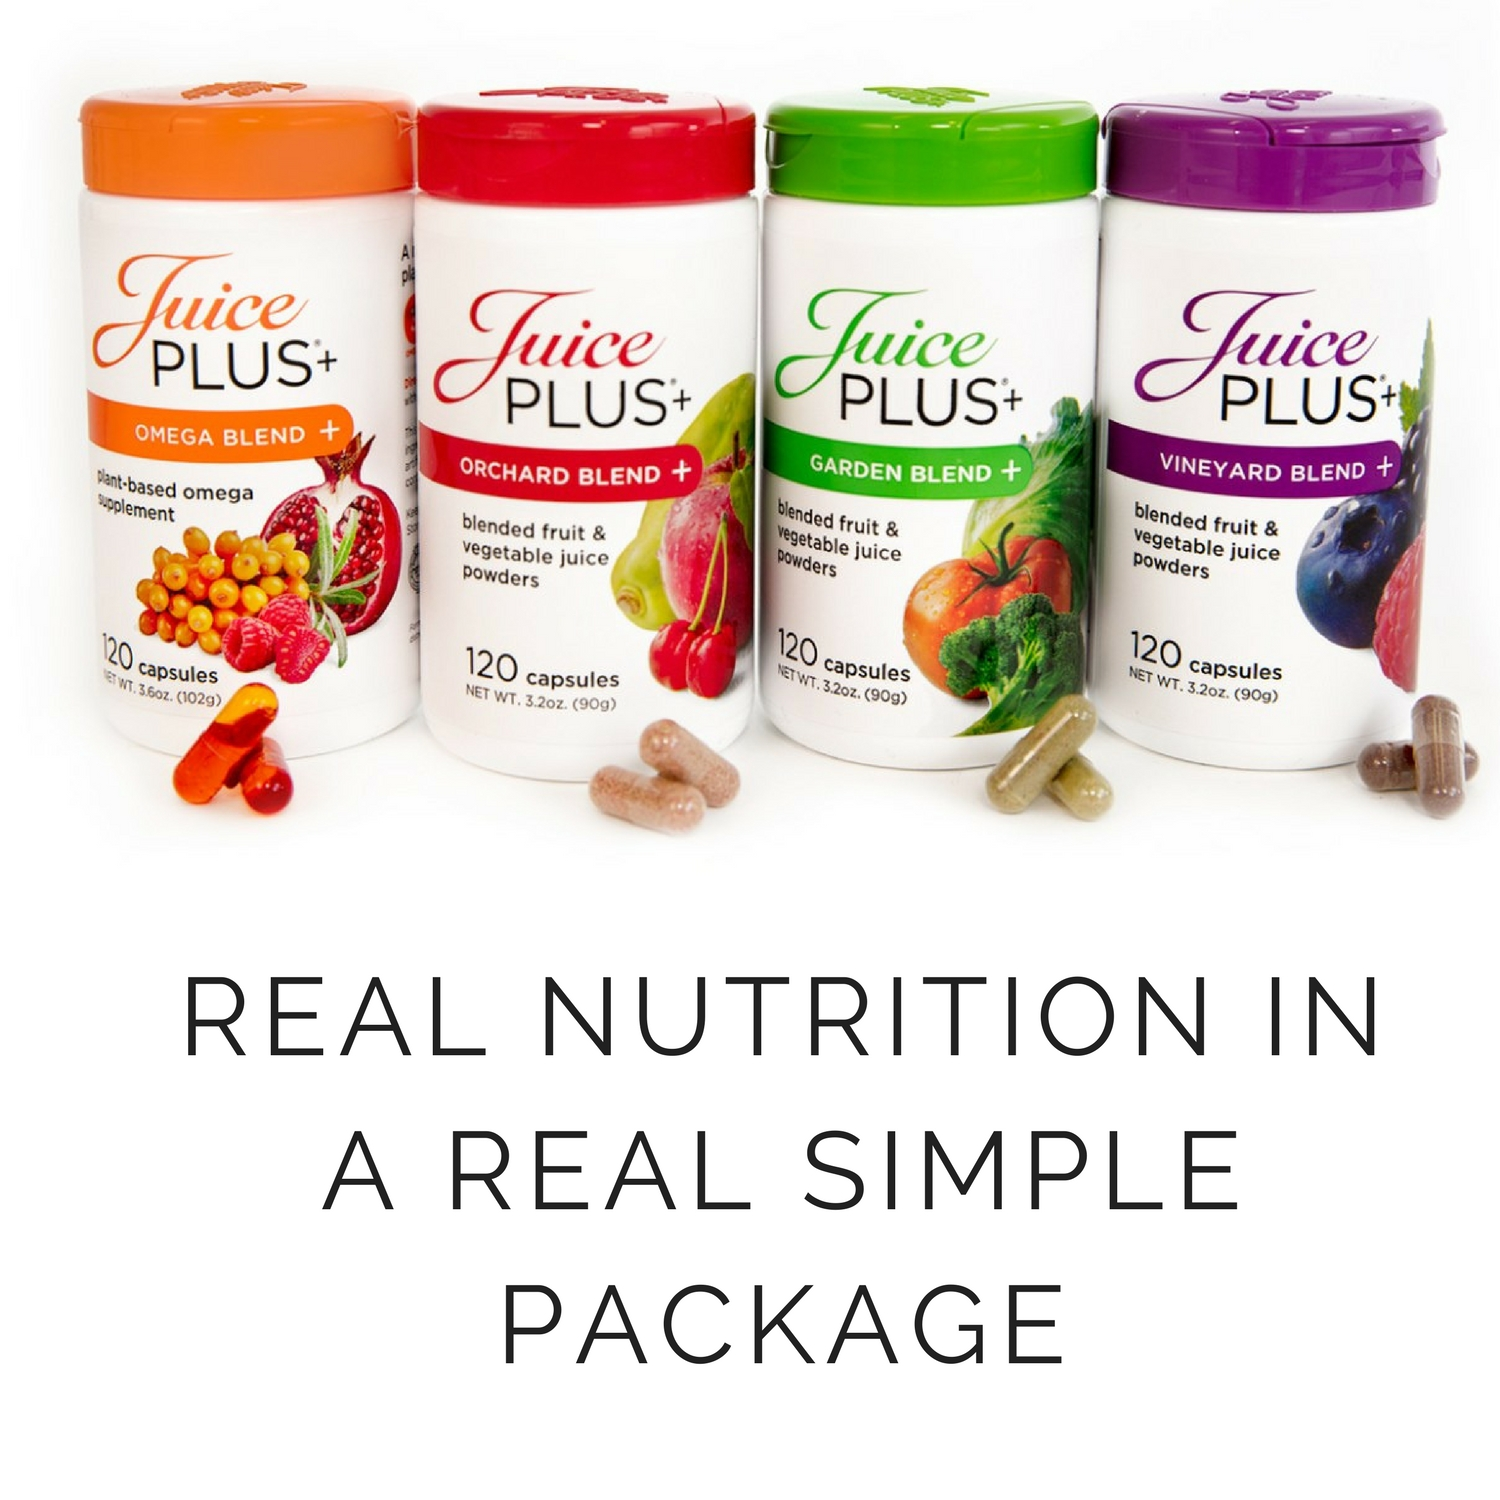 These high quality products will help you make the diet and lifestyle changes you seek without dieting, restricting, or feeling deprived.